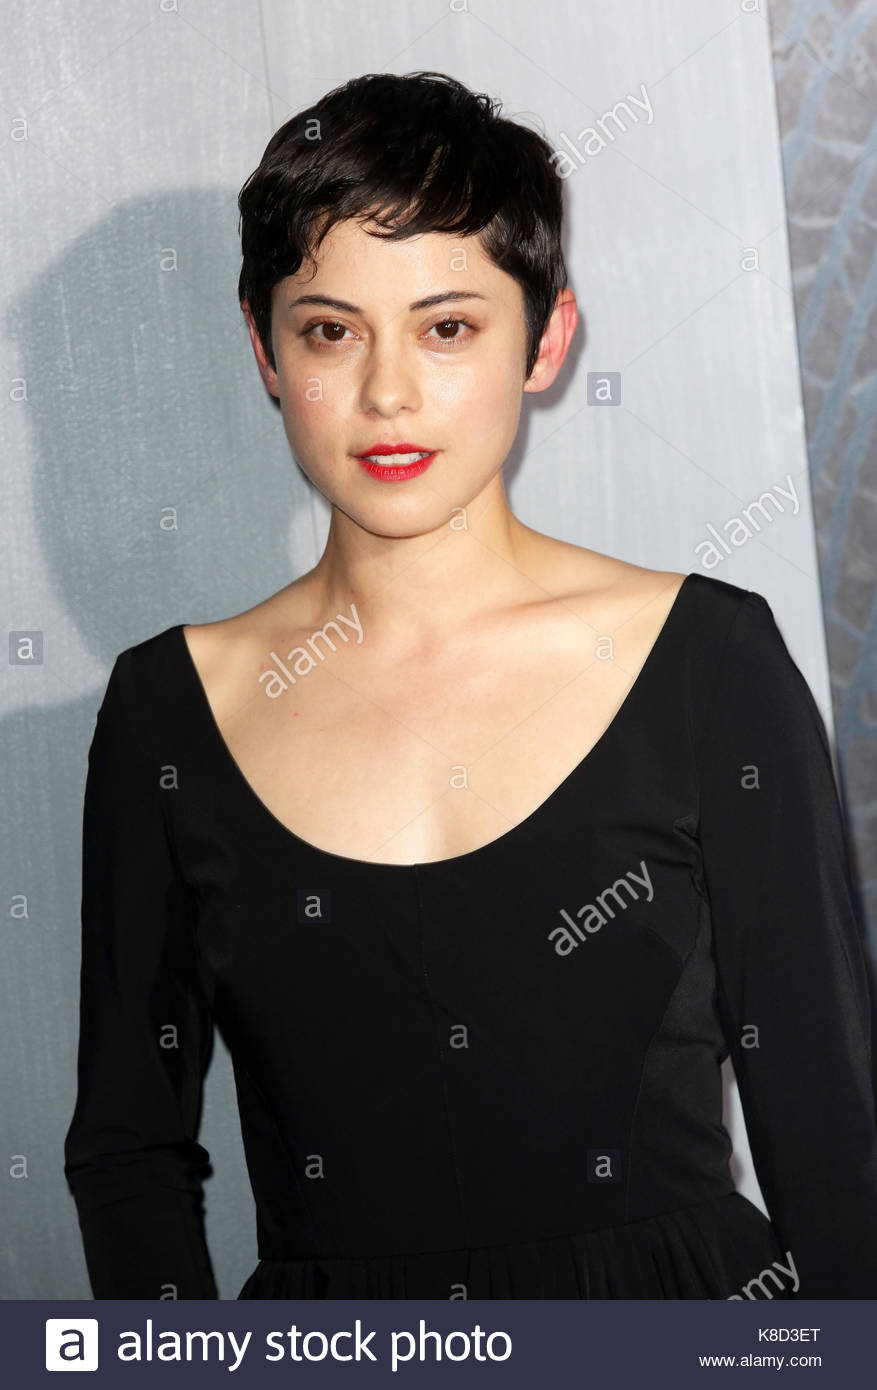 Rosa Salazar nudes (12 foto and video), Topless, Hot, Boobs, lingerie 2017